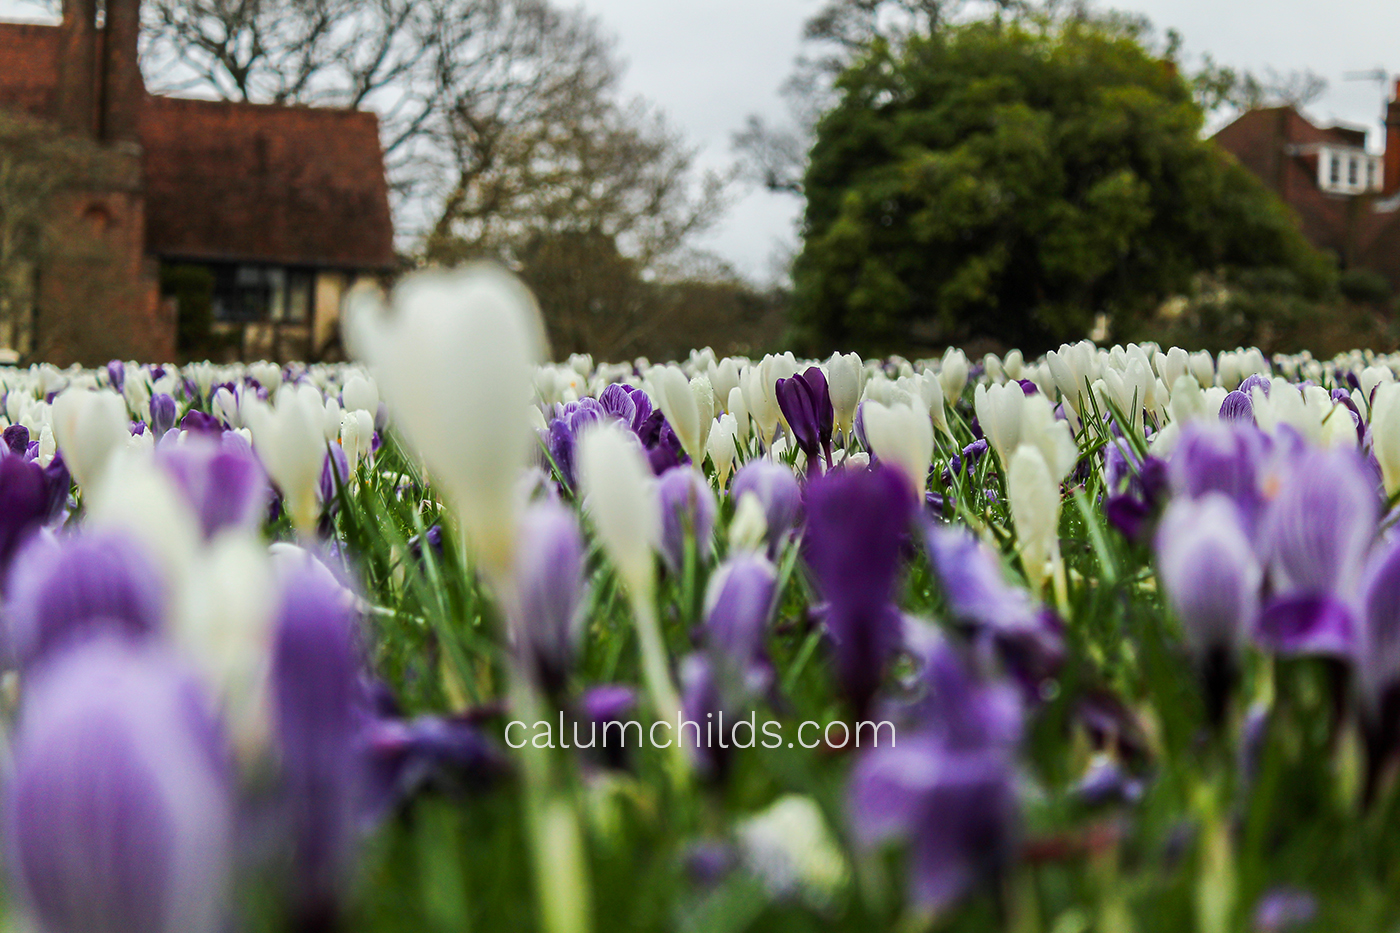 Purple and white crocuses grow in the foreground and in the background, with some blurred and some sharp.